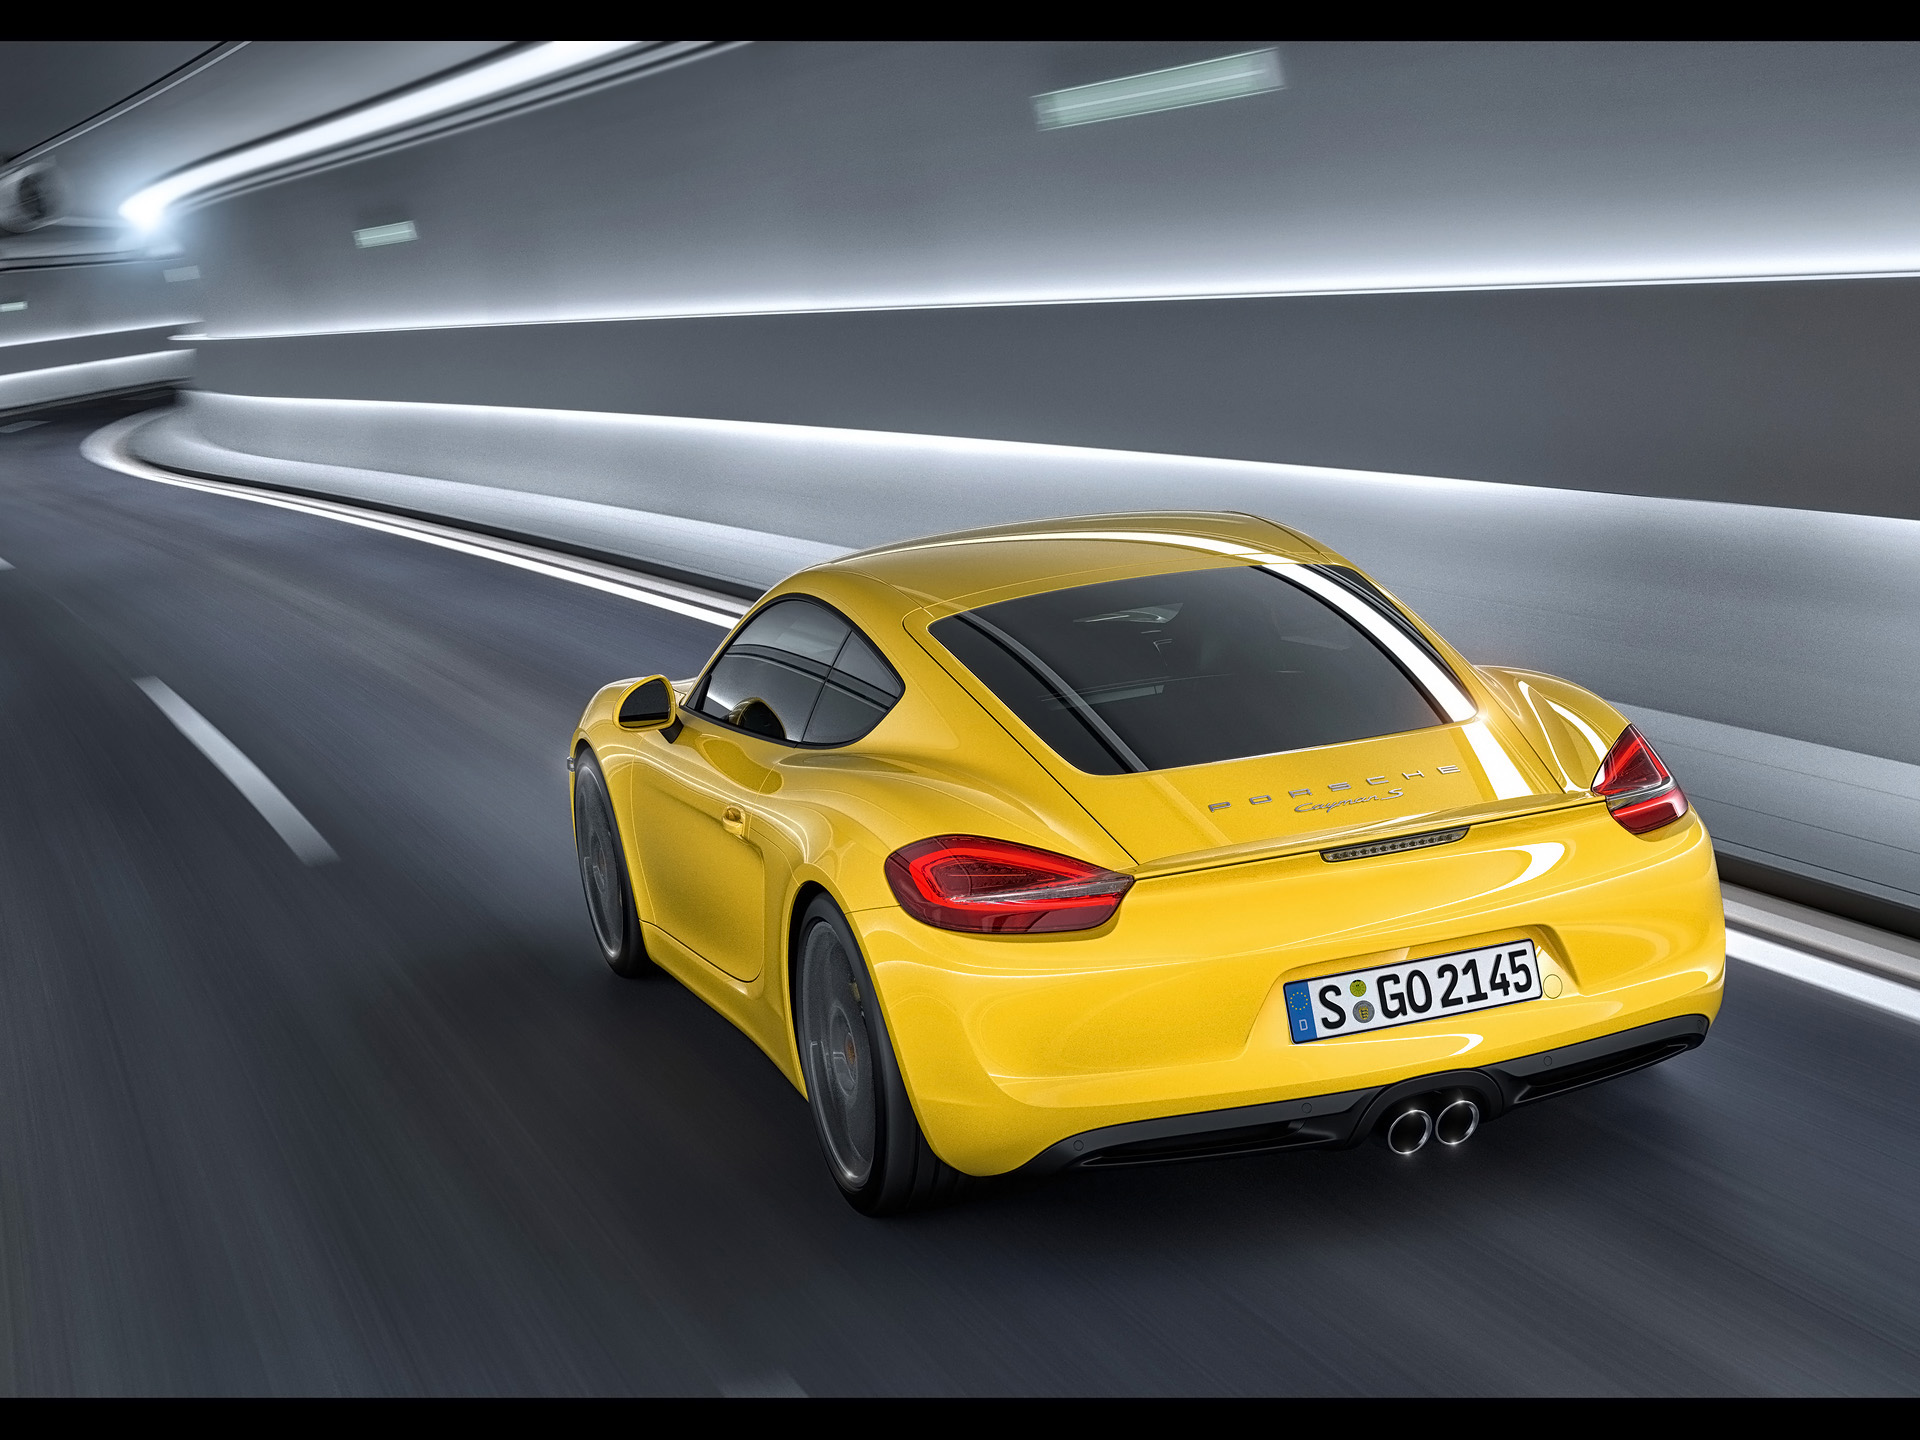 click to free download the wallpaper--Images of World-Known Cars, Porsche Cayman Seen from Rear Angle, Yellow Car in Tunnel 1920X1440 free wallpaper download